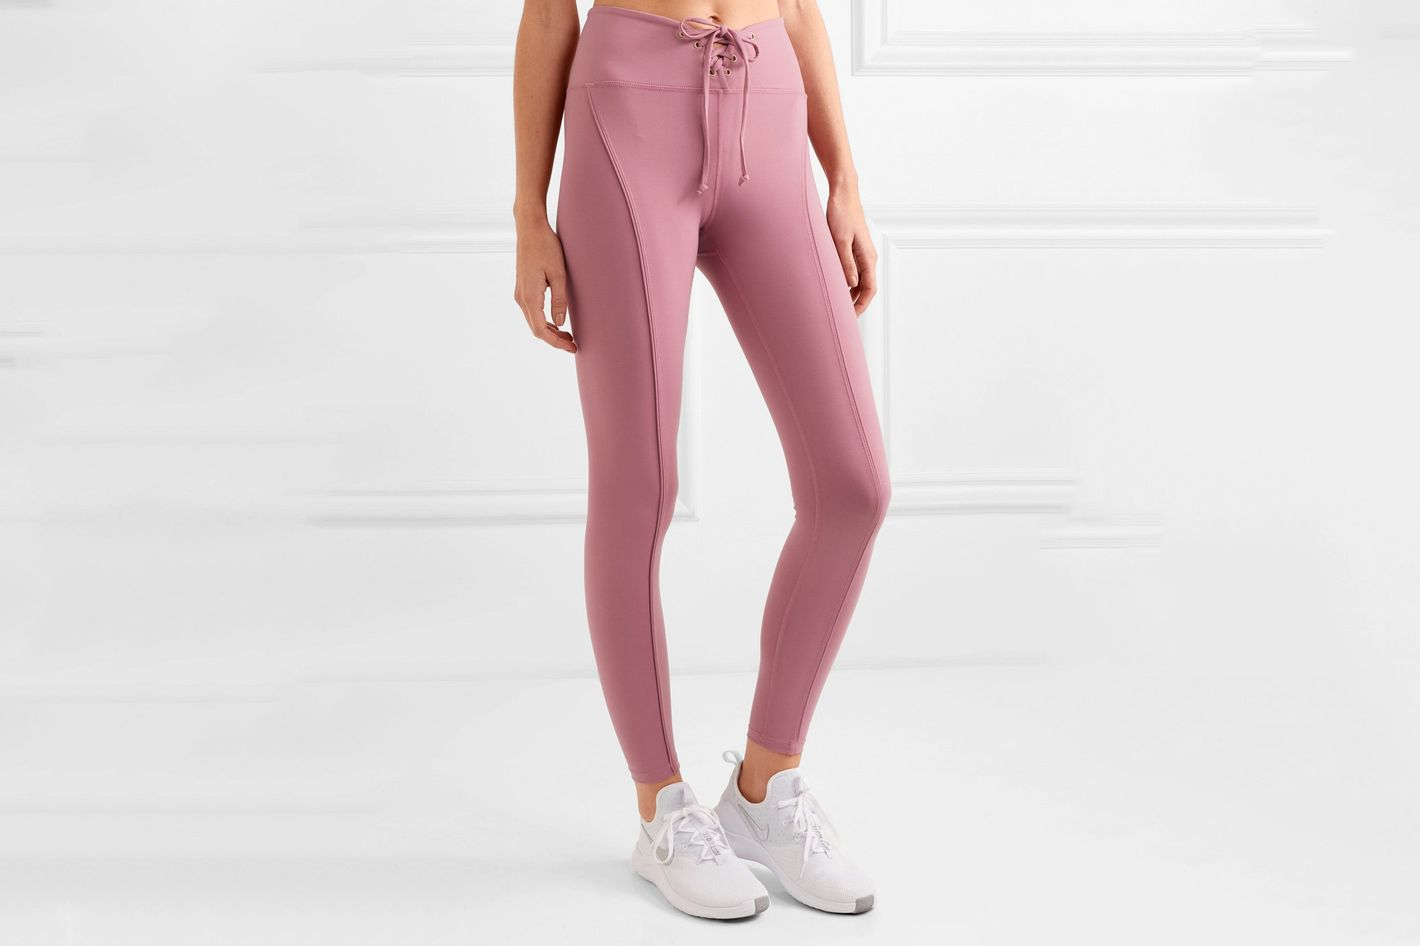 746f643b5c0db9 The 13 Best Workout Leggings for Running and Yoga 2019